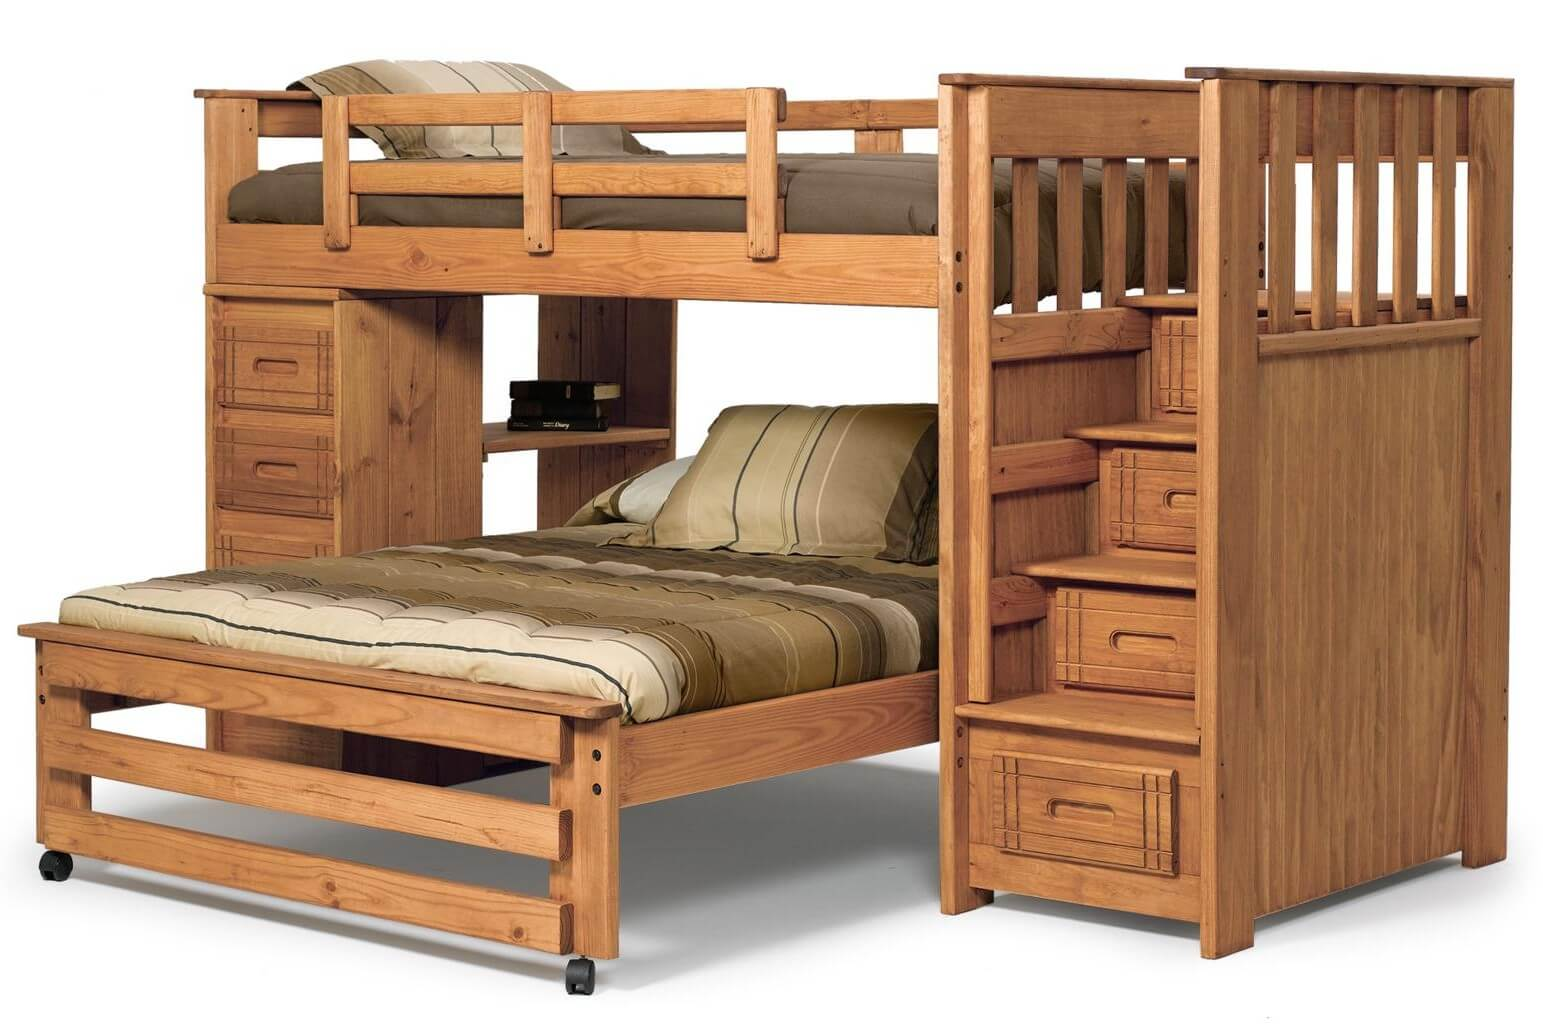 Bunk bed with stairs and storage - Bunk Bed With Stairs And Storage 26